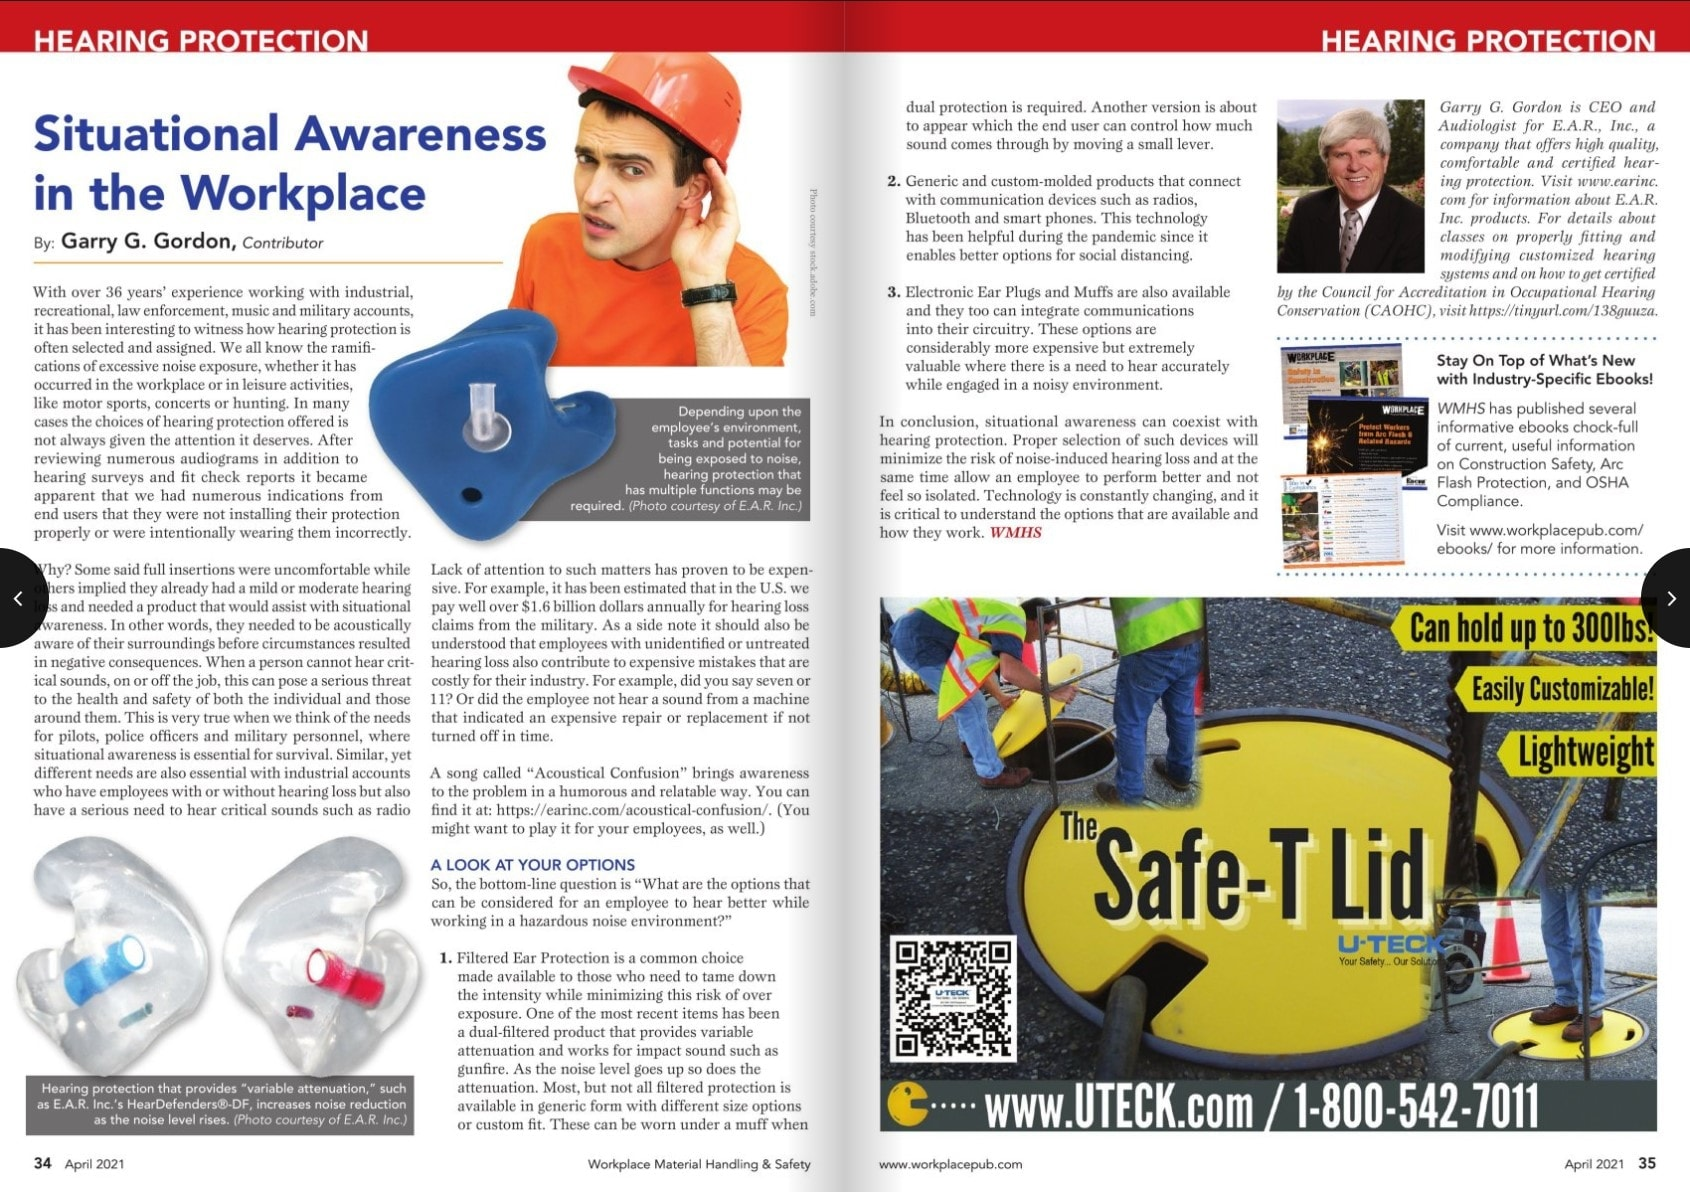 workplace magazine article about workplace hearing protection